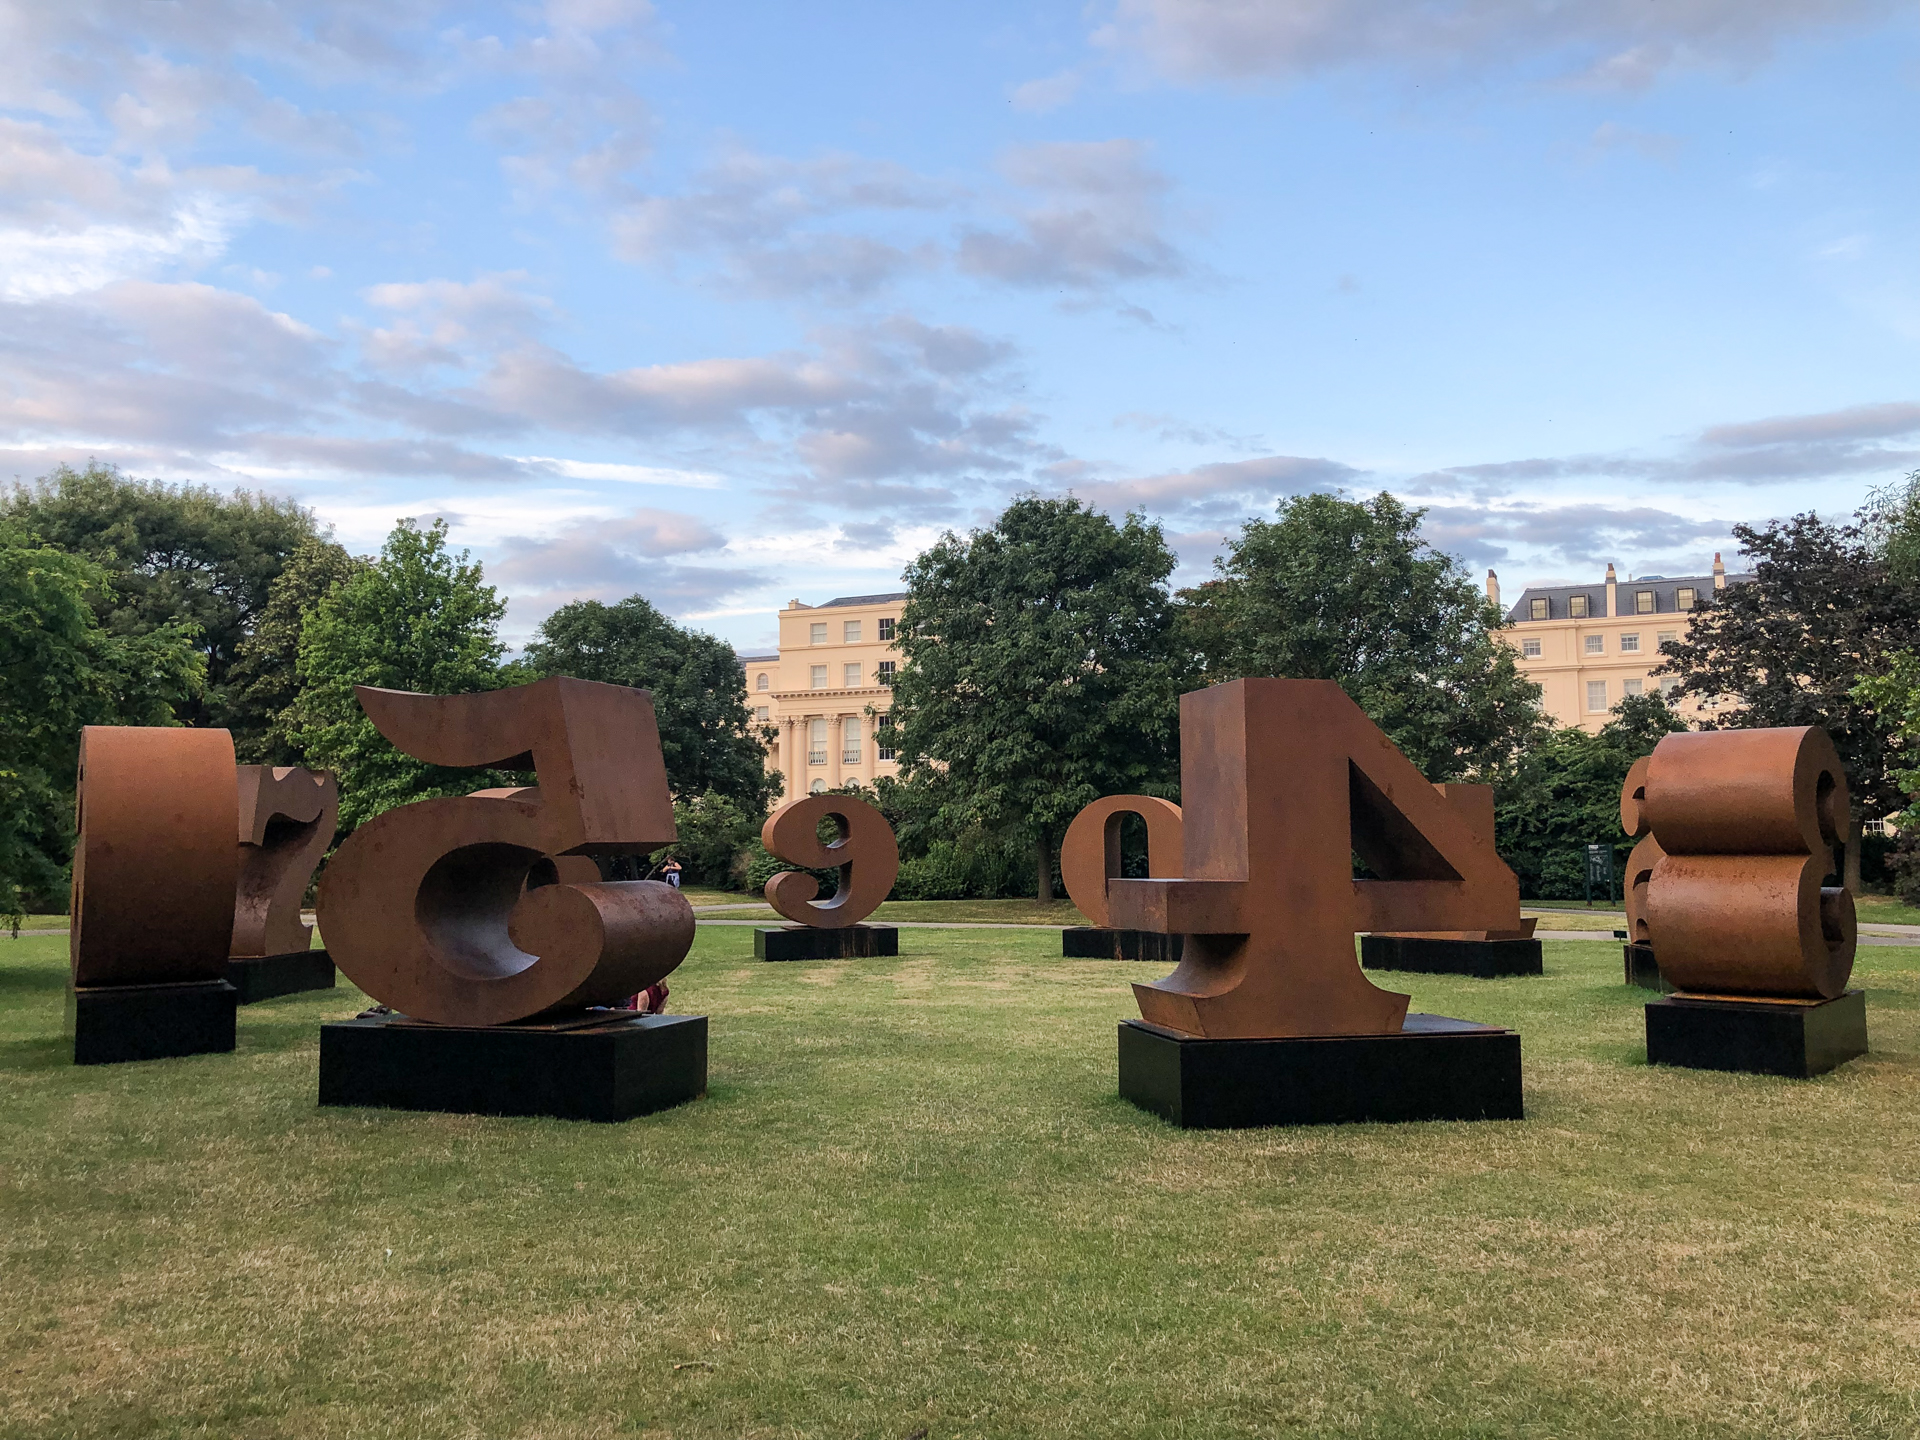 Robert Indiana, One Through Zero (1980-2002). Waddington Custot, Frieze Sculpture 2019  ph. Amalia Di Lanno